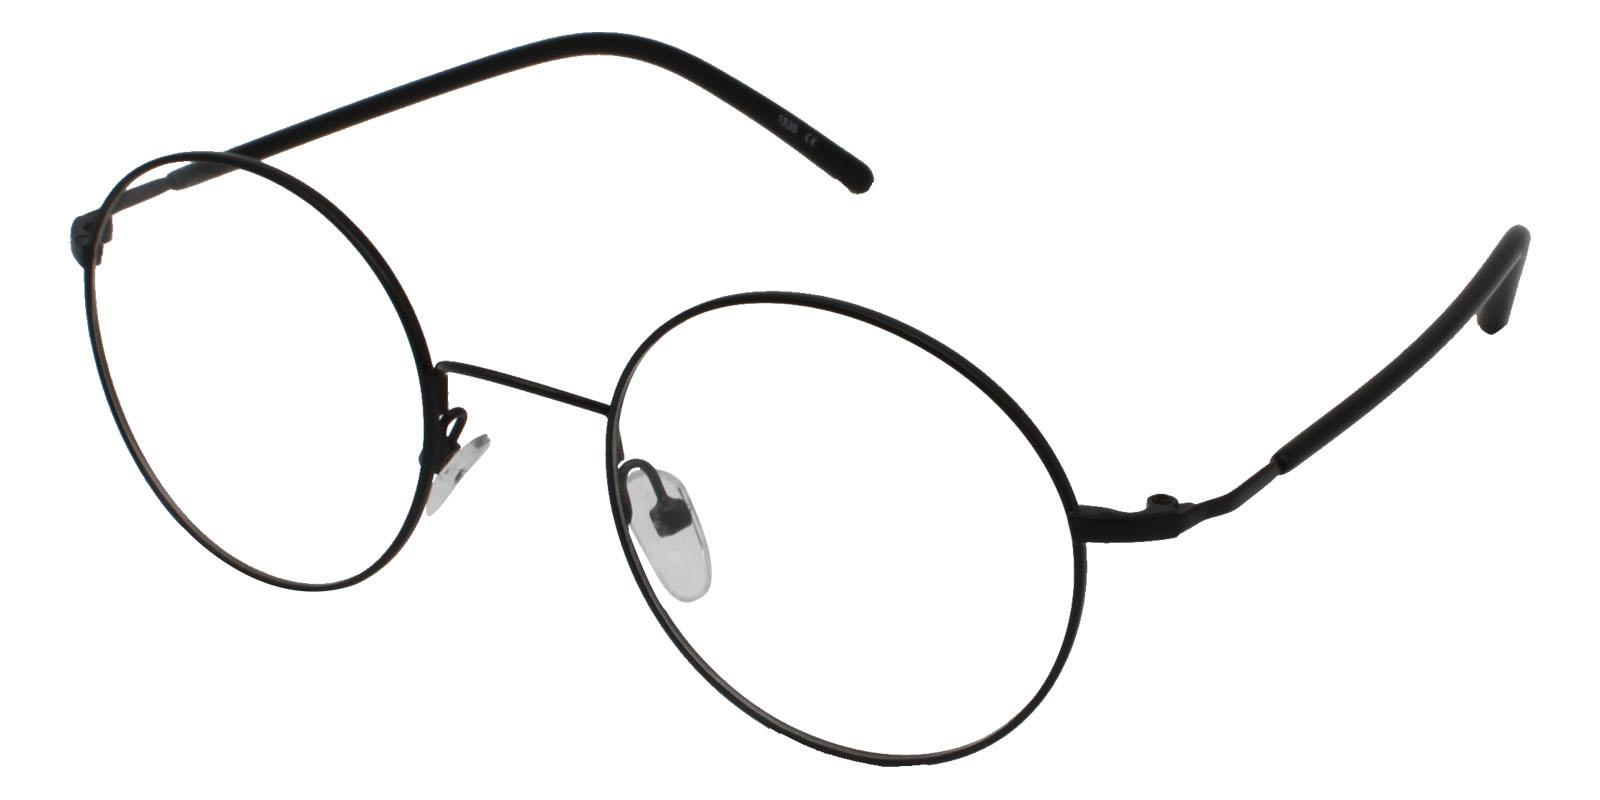 Faith Black Metal Eyeglasses , Lightweight , NosePads Frames from ABBE Glasses